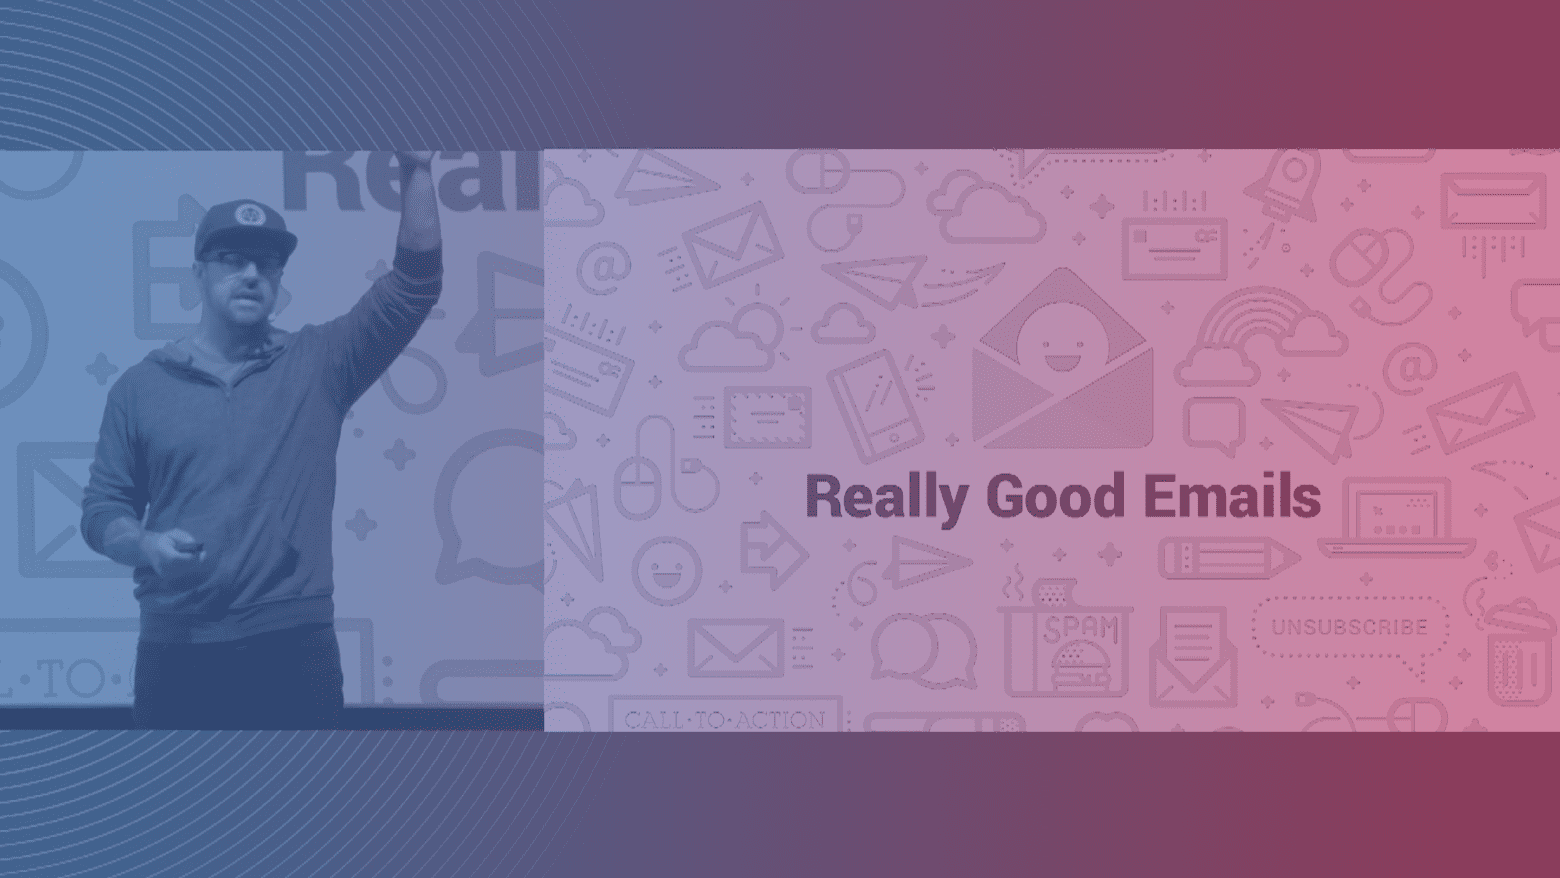 What the #$@! is a Really Good Email?